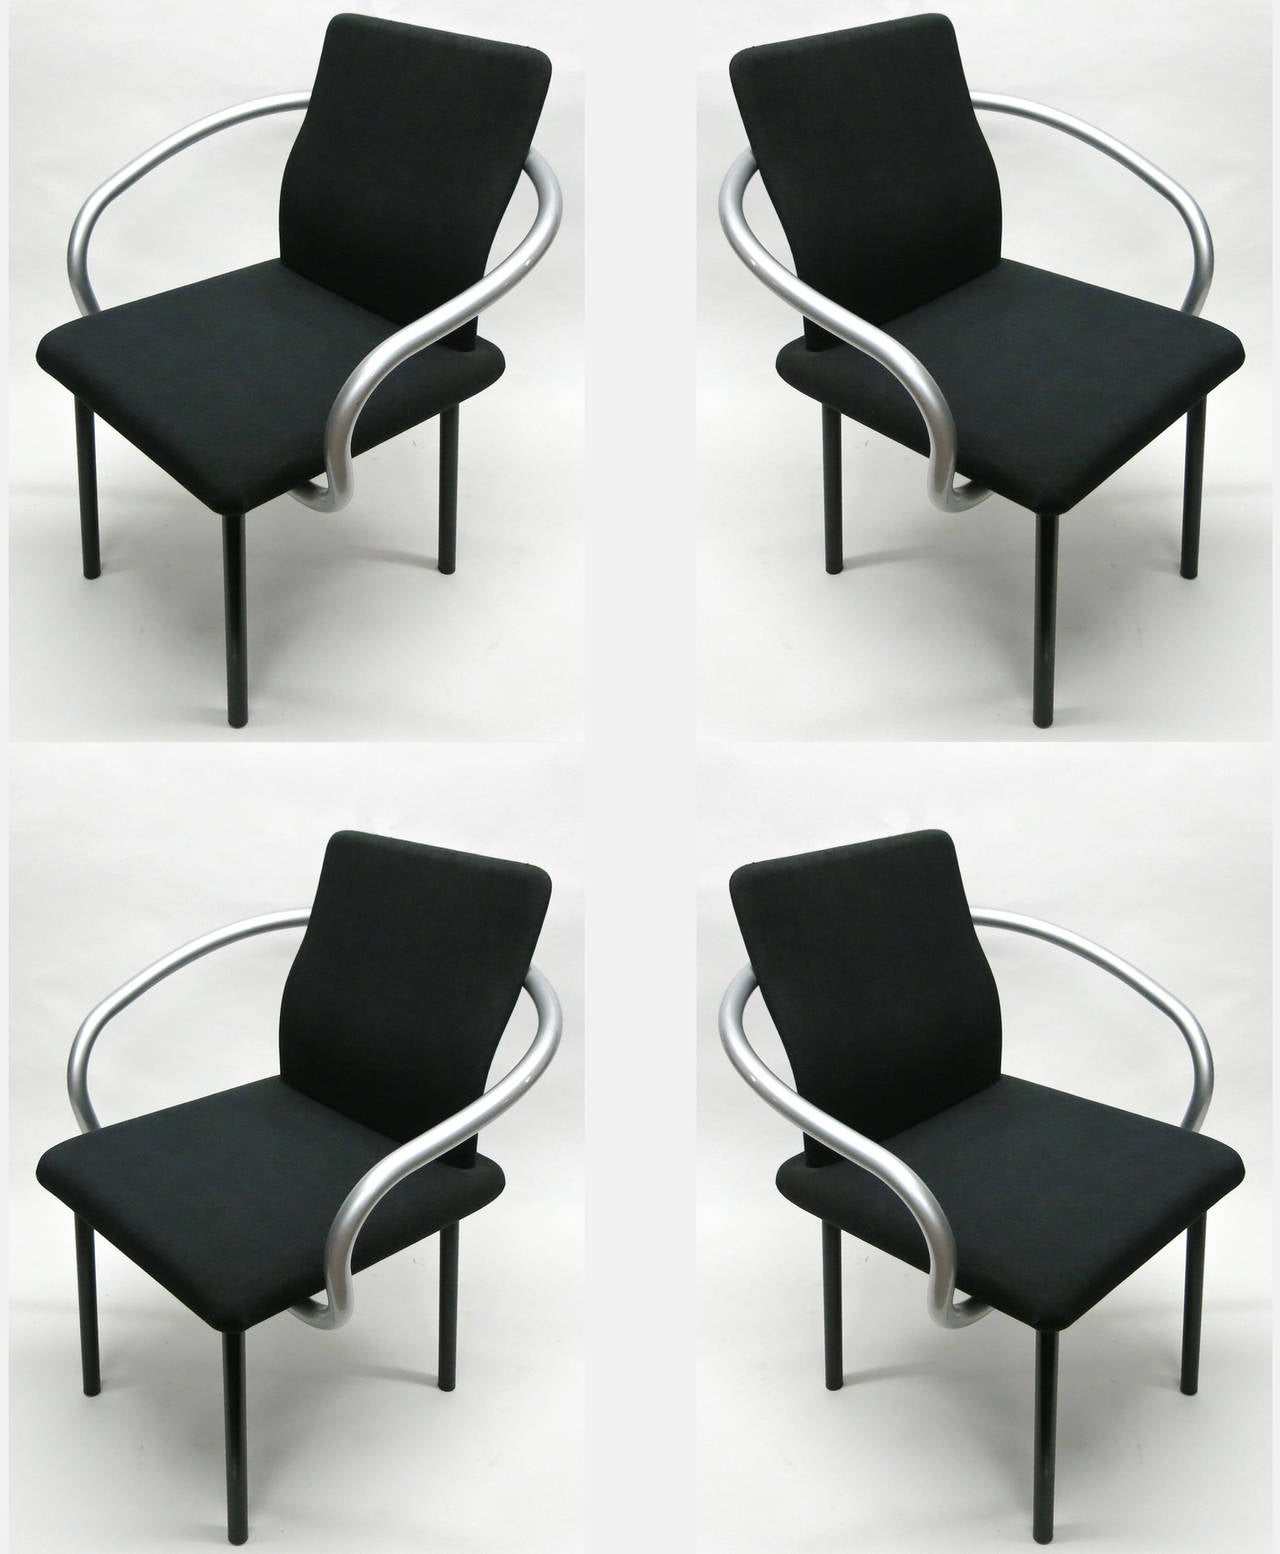 Set of six Mandarin chairs with original black fabric and grey metallic arms each with original labels underneath read Ettore Sottsass for Knoll International,